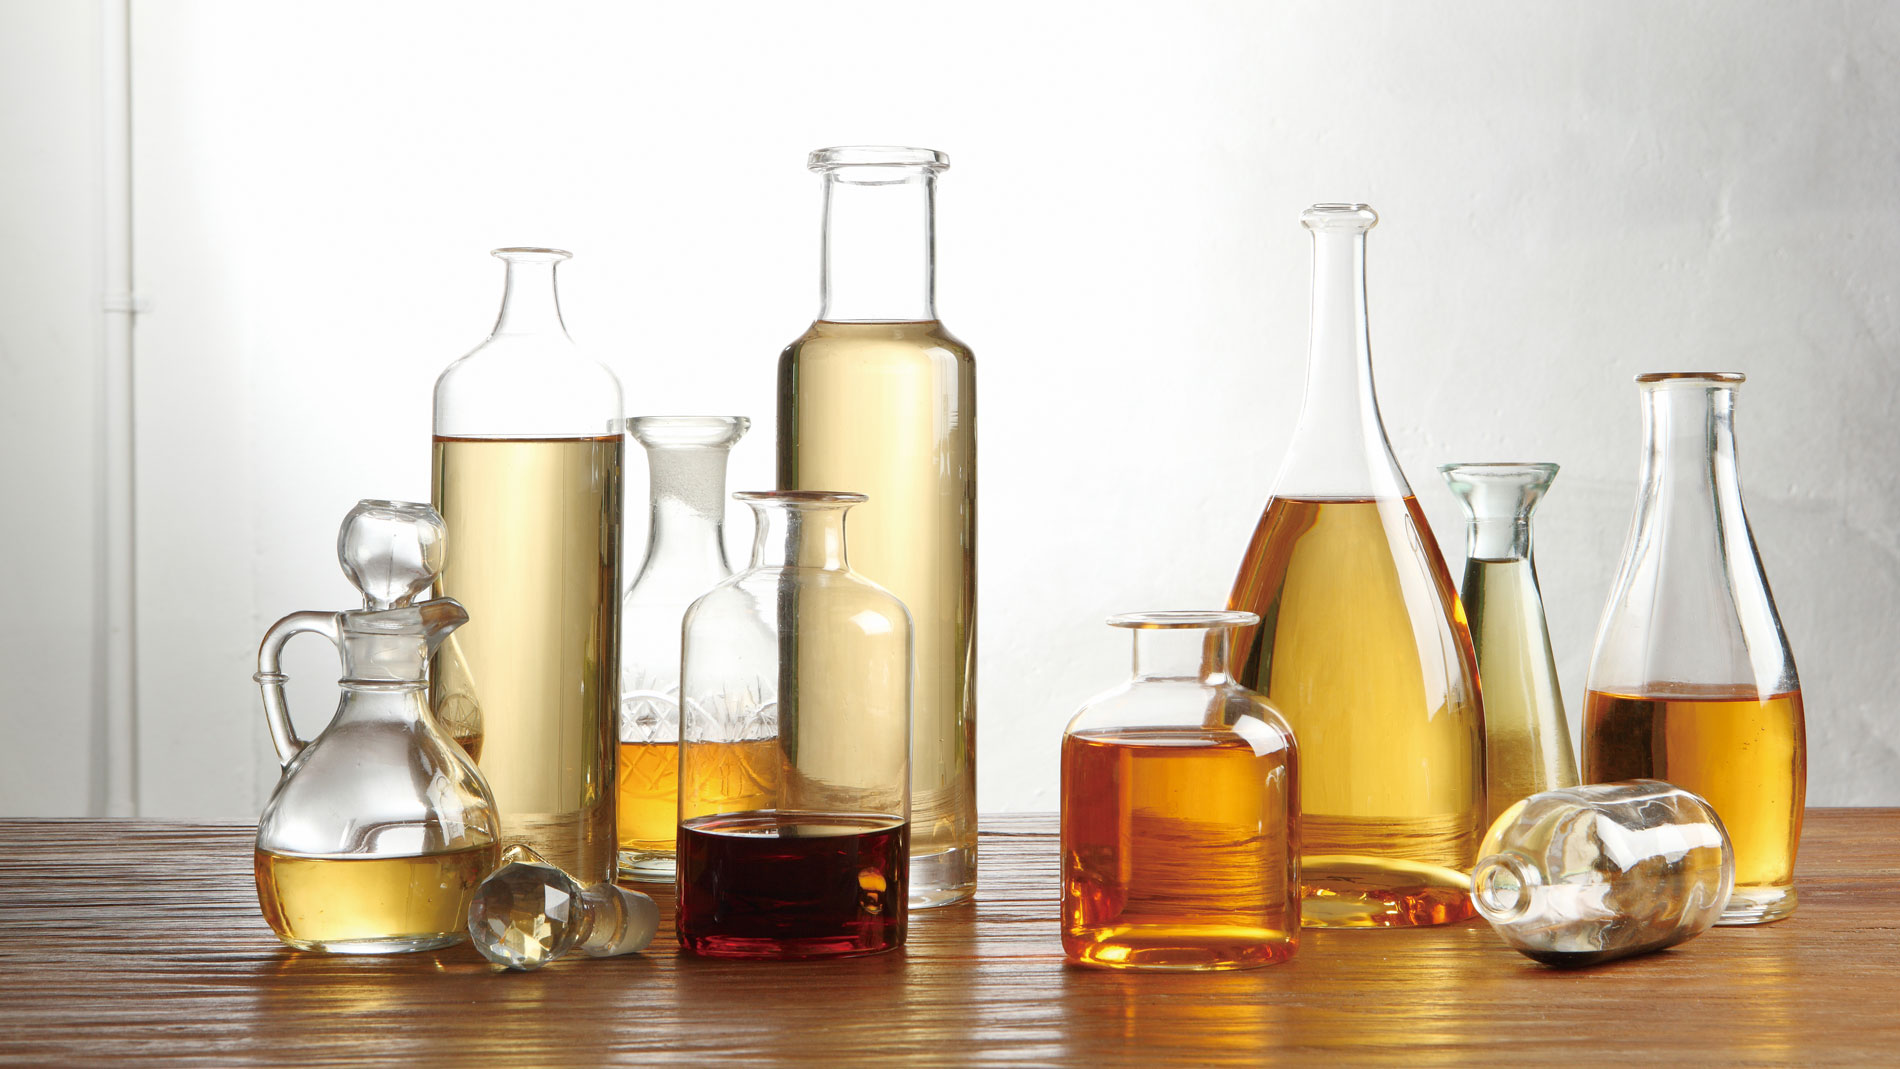 How to replace vinegar and its types